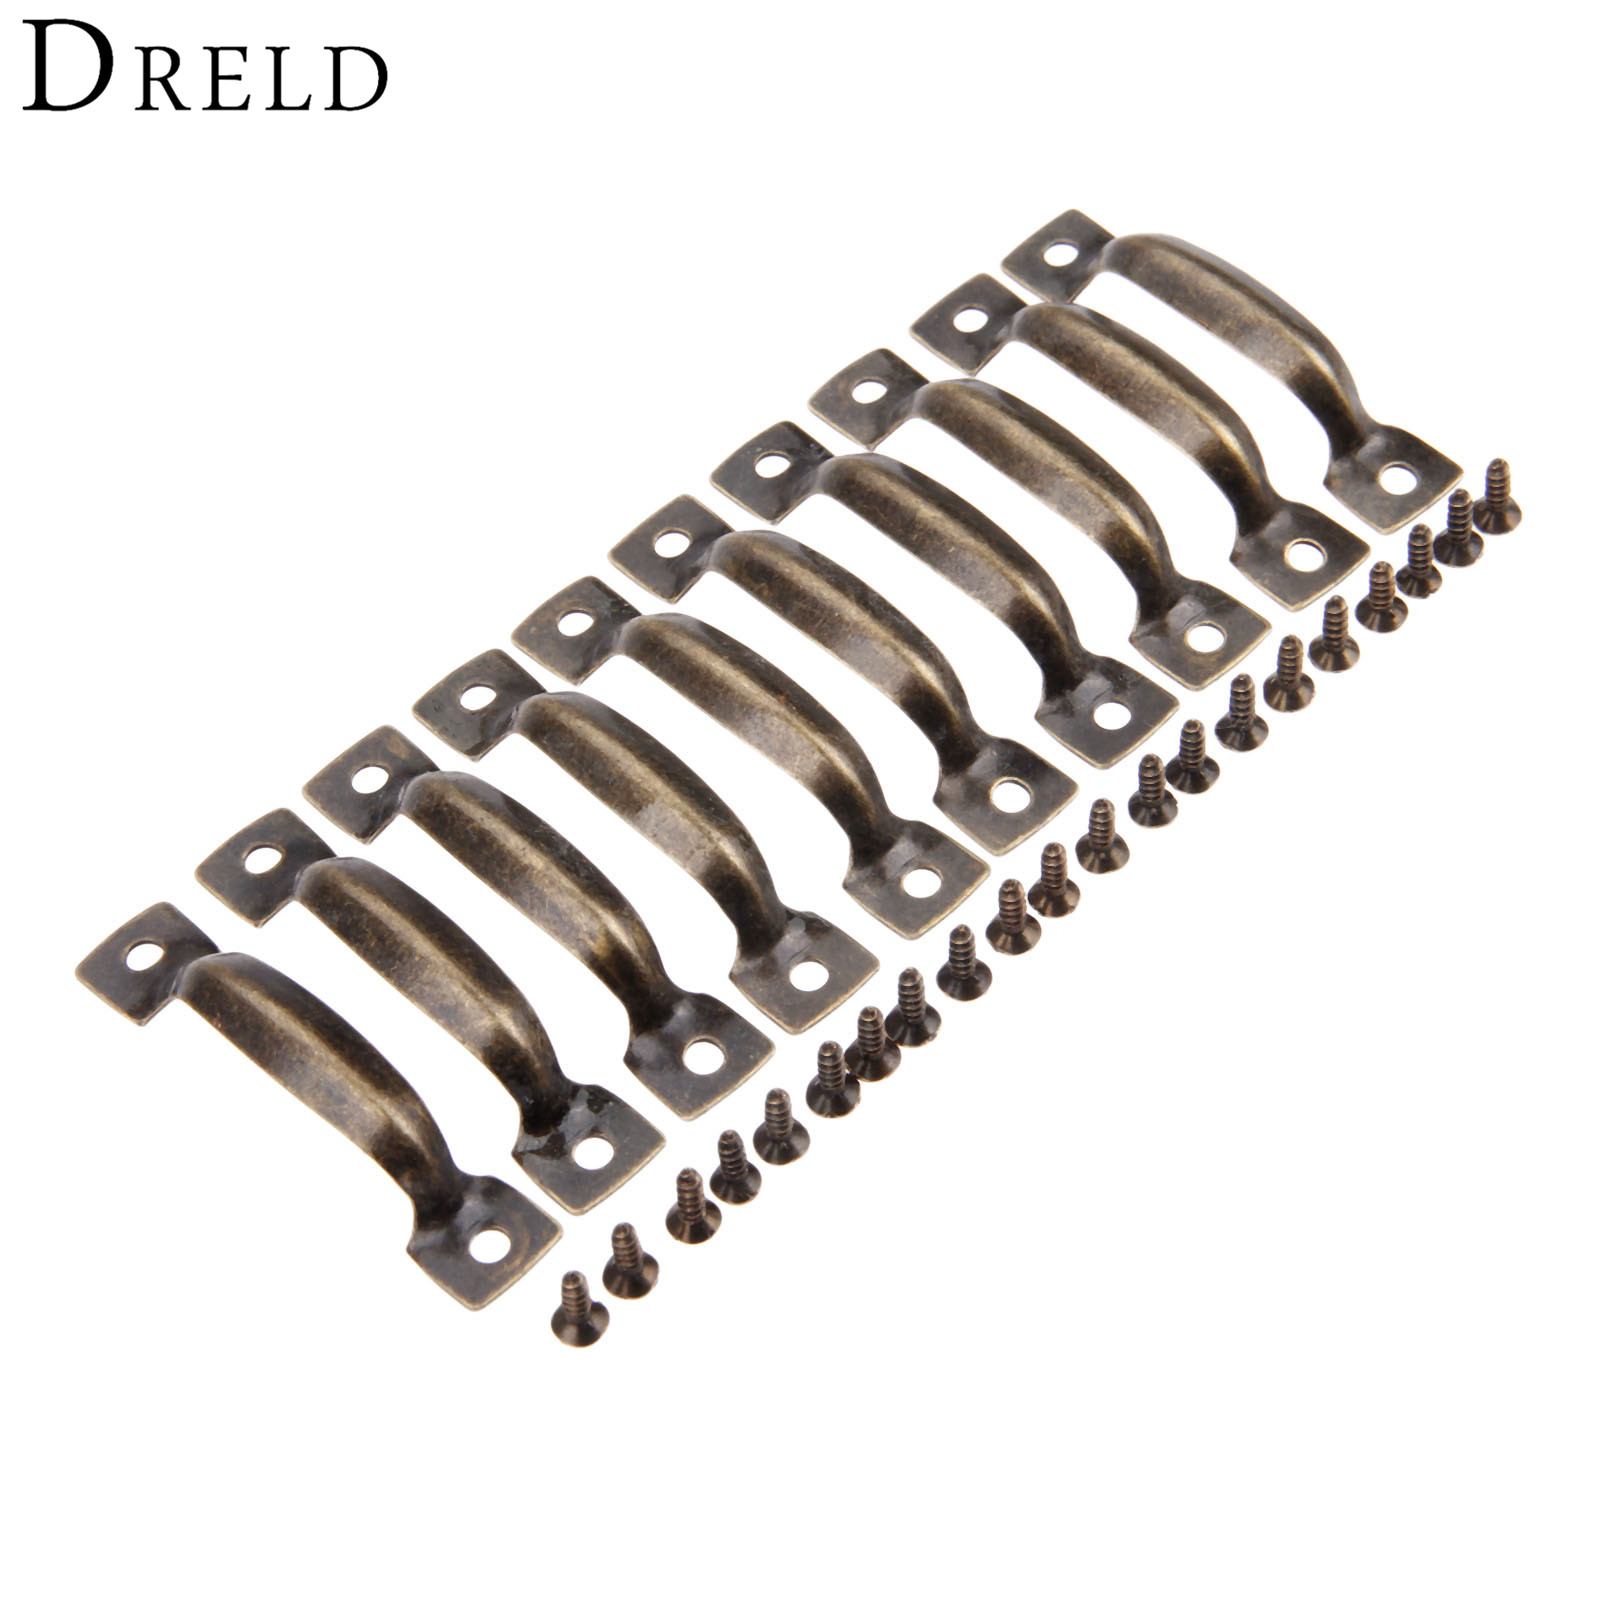 DRELD 10Pcs Antique Furniture Handles Cabinet Knobs and Handles Cupboard Drawer Kitchen Pull Handle Furniture Hardware 52*11mmDRELD 10Pcs Antique Furniture Handles Cabinet Knobs and Handles Cupboard Drawer Kitchen Pull Handle Furniture Hardware 52*11mm